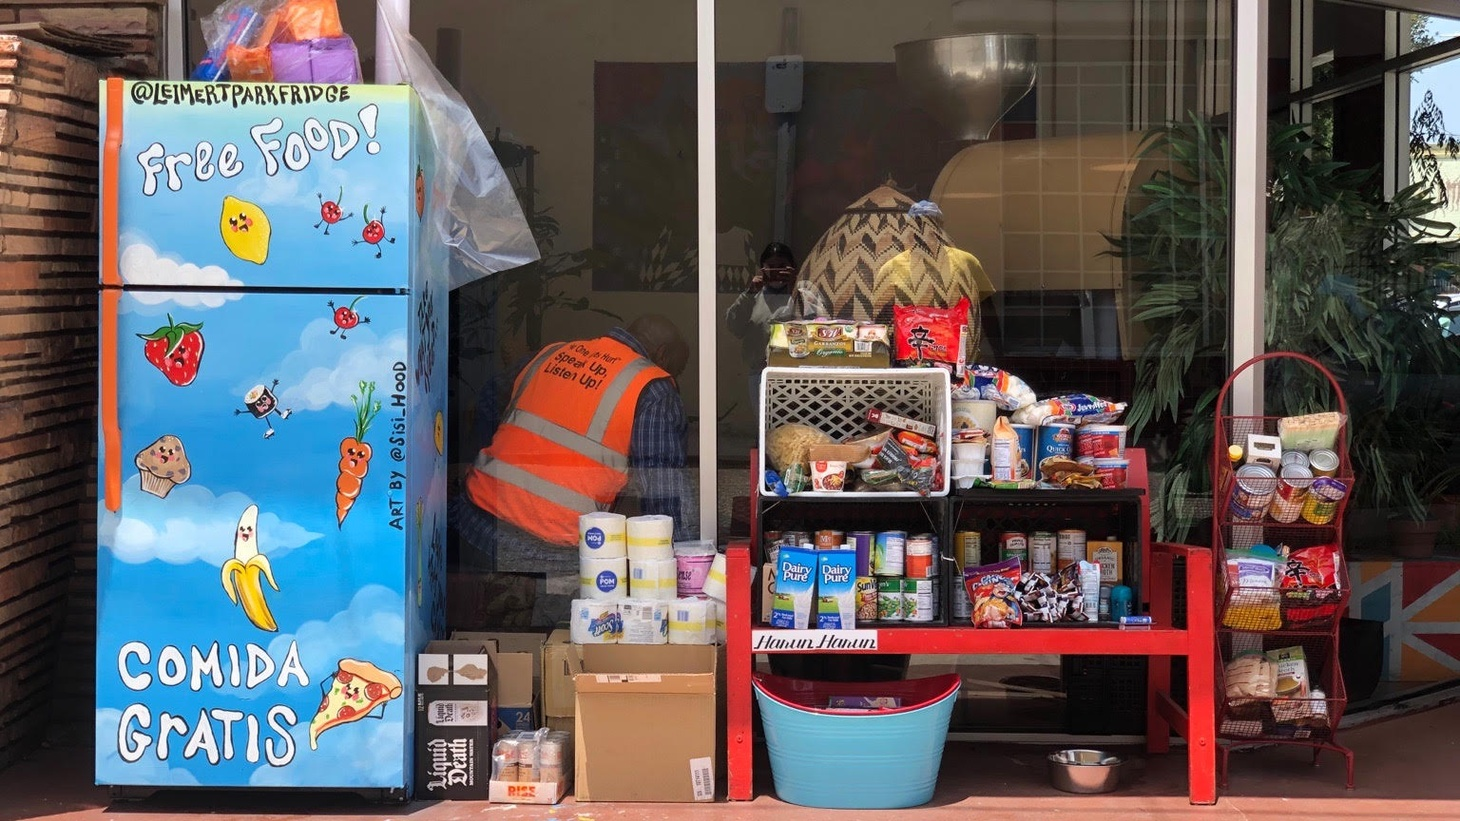 Pantry staples, prepared meals, and masks are a few items available at this Mid City community refrigerator.